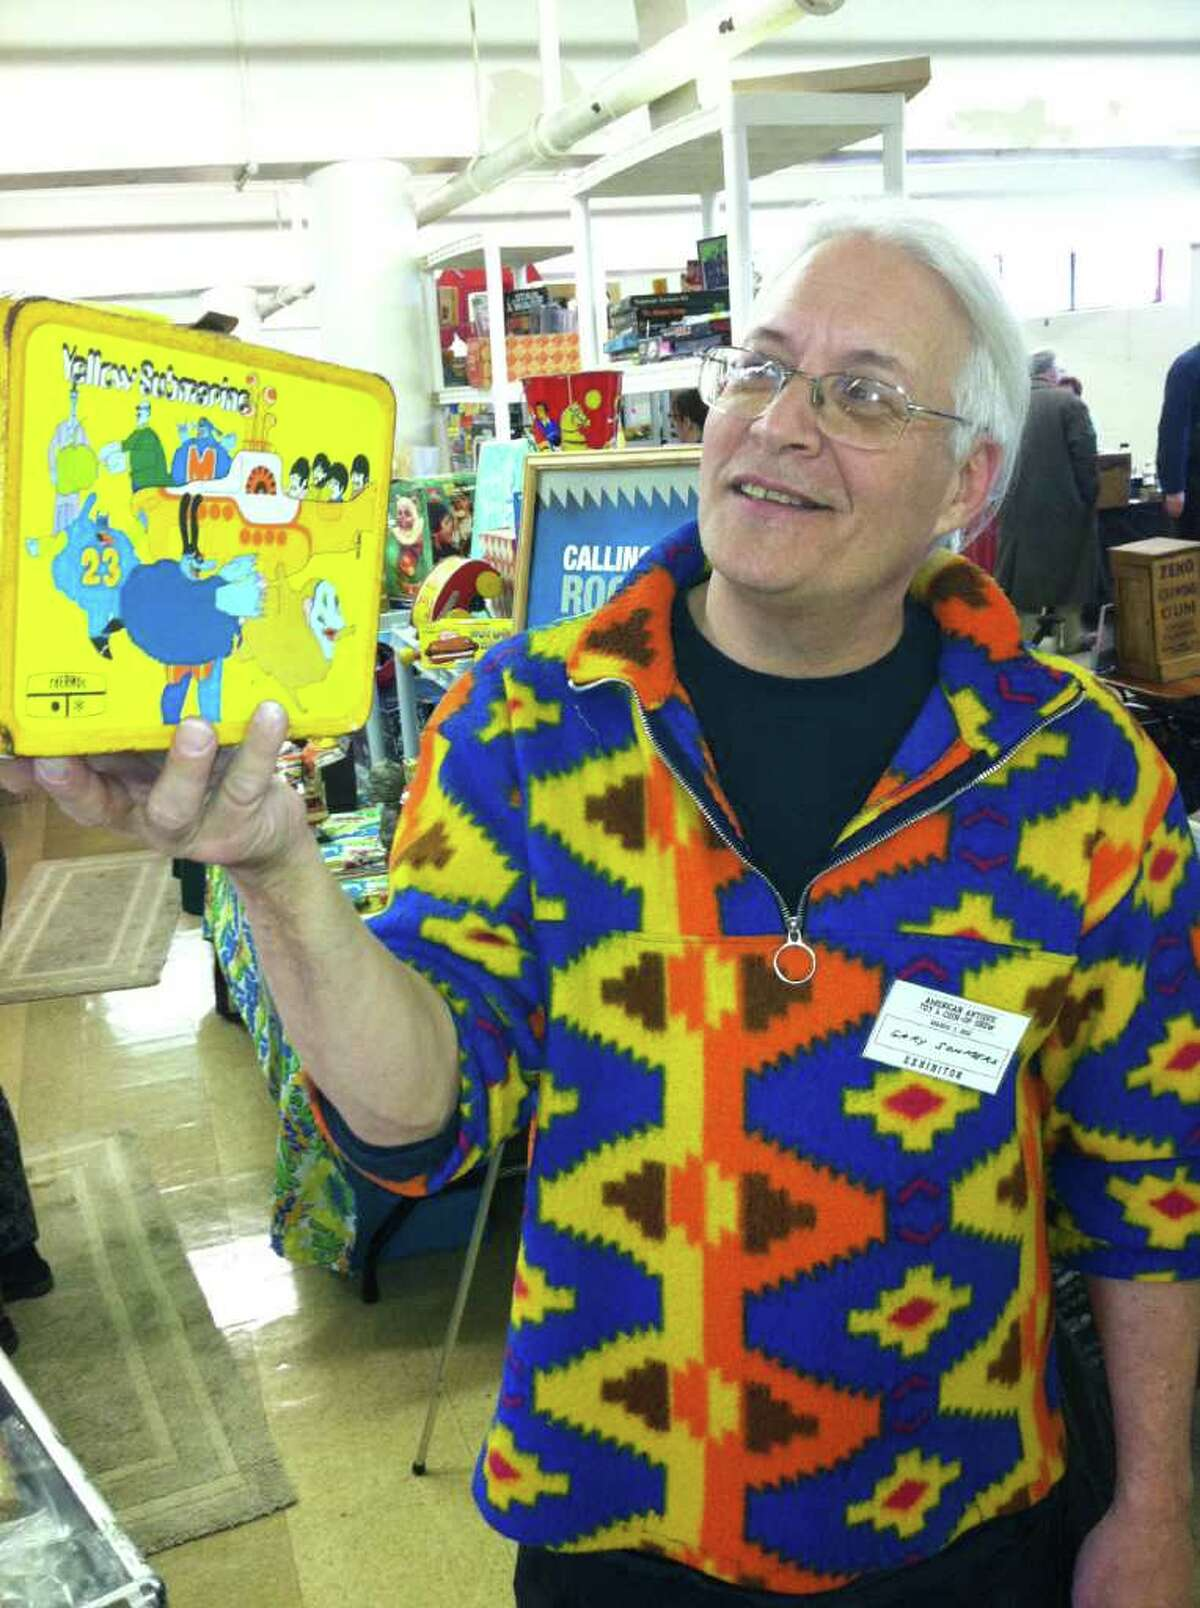 Gary Sohmers, of Hudson, Mass., holds a lunch box decorated with the Beatles Yellow Submarine Saturday at an antique toys and coin-operated arcade machines show at the Eastern Greenwich Civic Center. Sohmers has appeared as an appraiser on the PBS television show